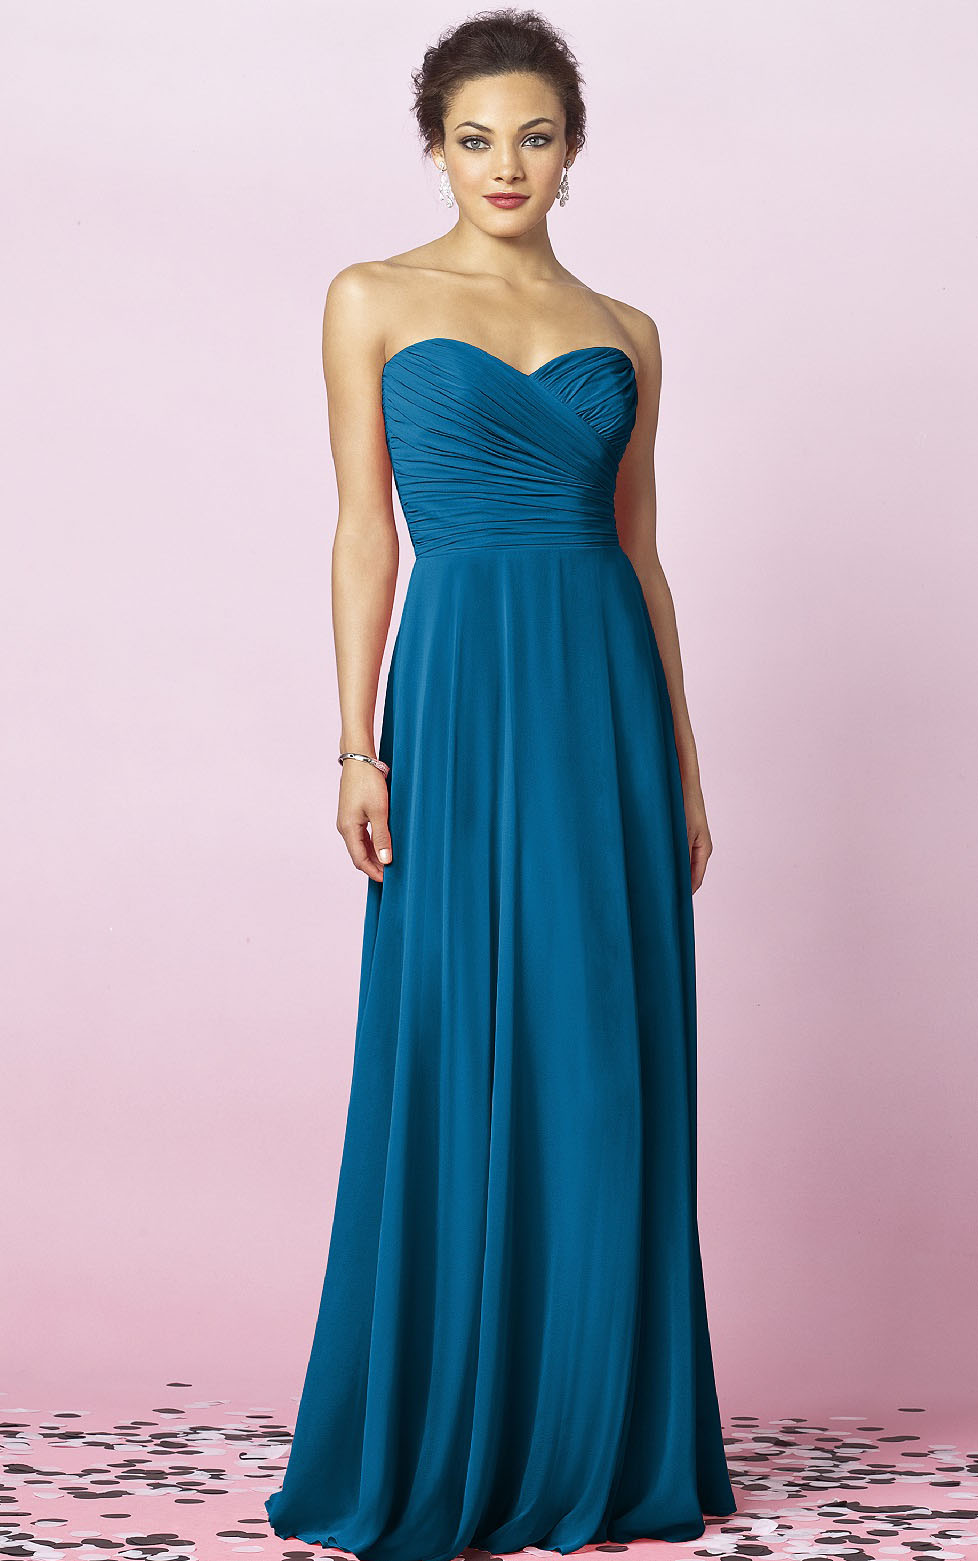 A-line Chiffon Floor-length Sweetheart Sleeveless Bridesmaid Dresses